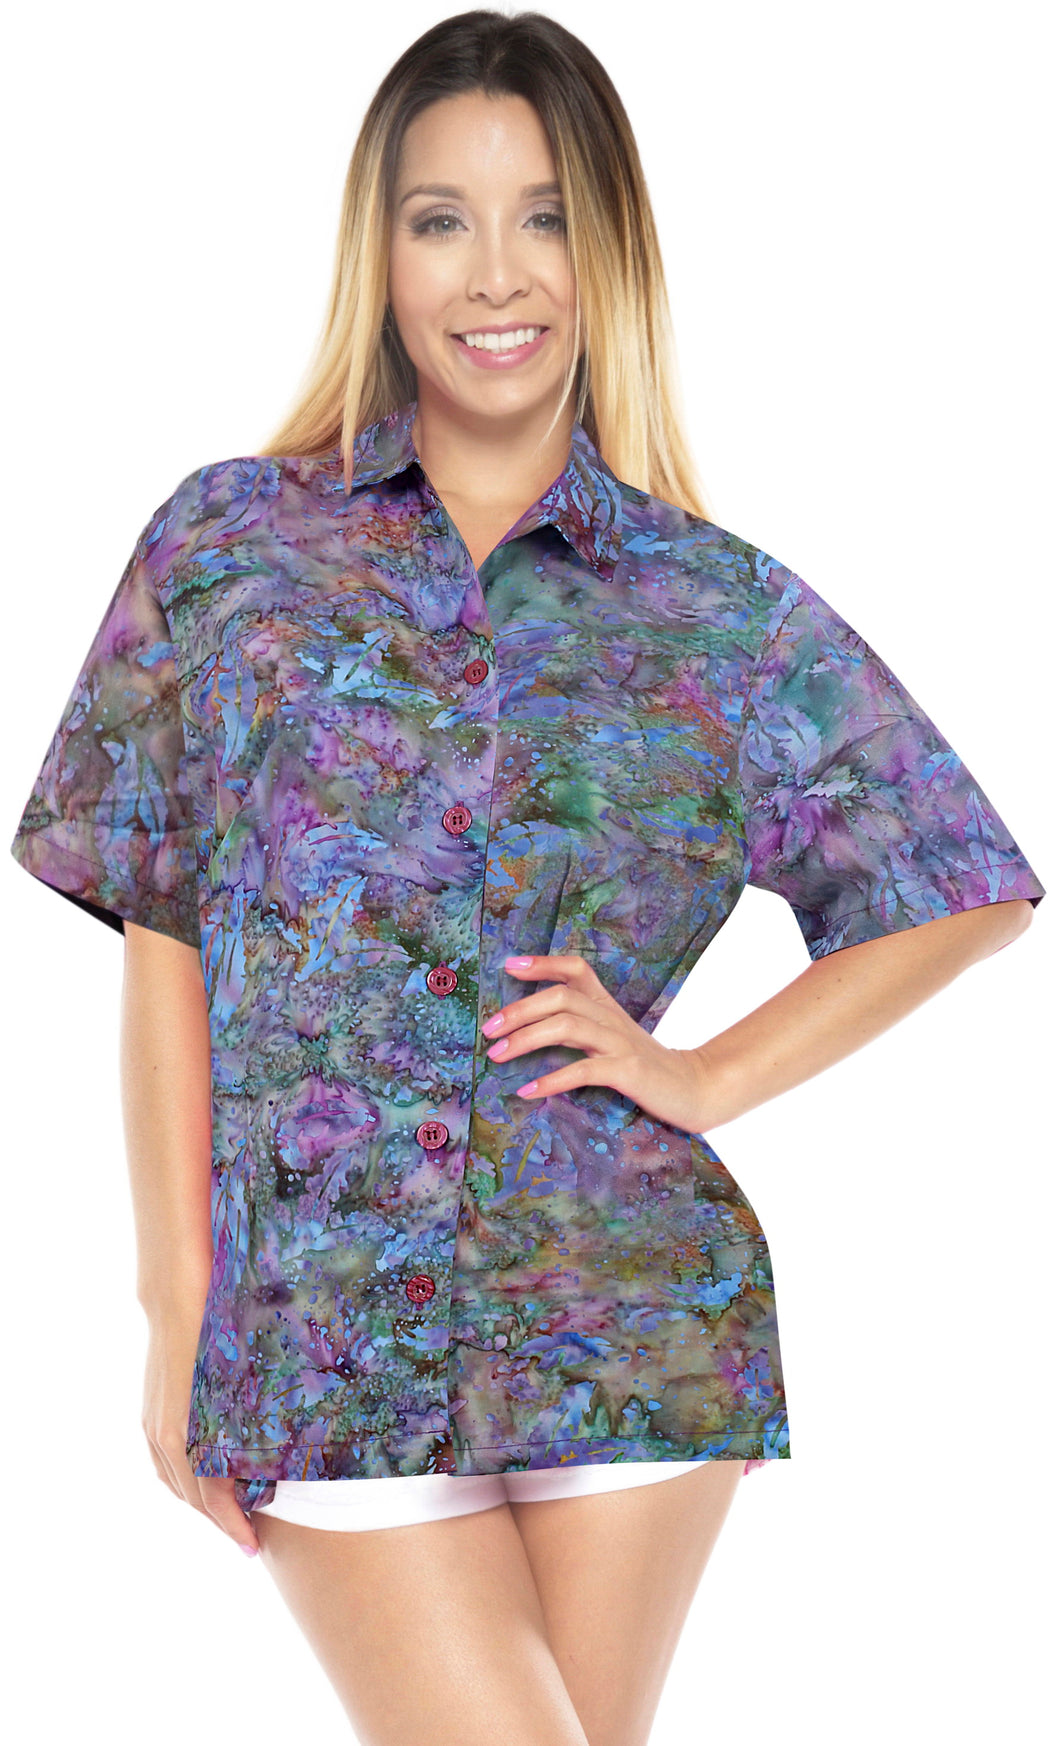 la-leela-womens-beach-wear-button-down-short-sleeve-casual-100-cotton-leaf-hand-printed-blouse-turquoise